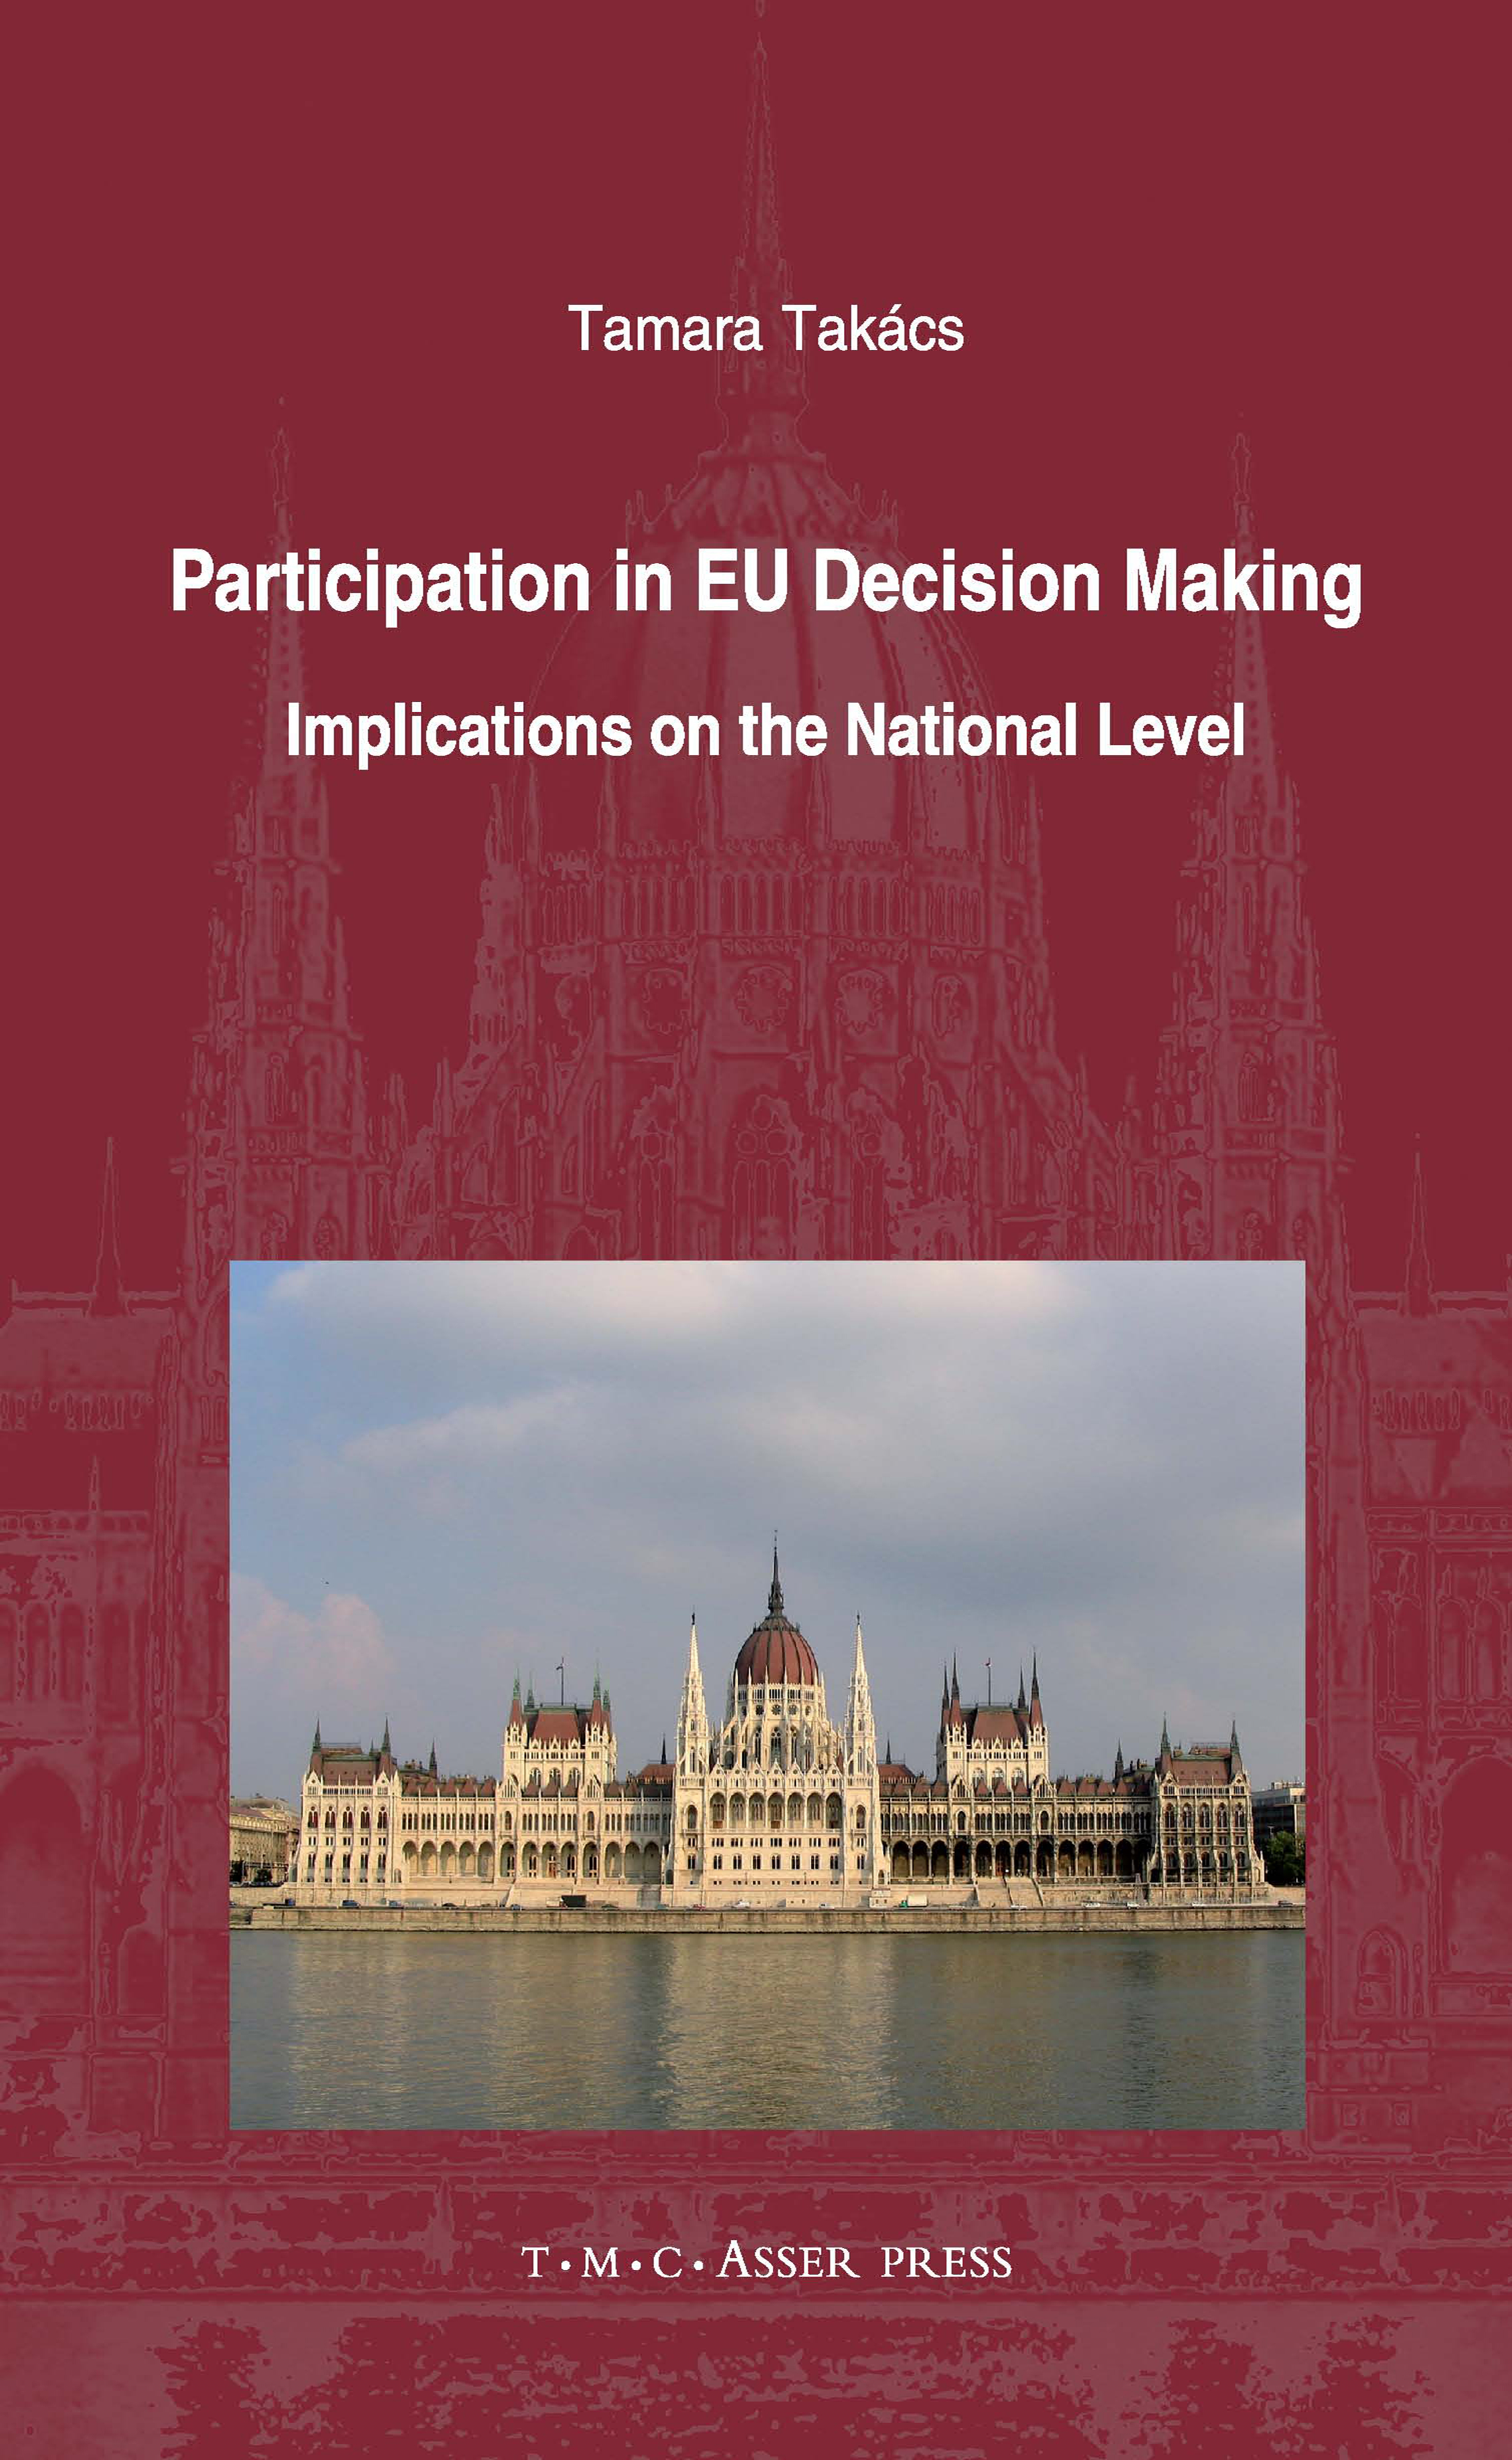 Participation in EU Decision Making - Implications on the National Level